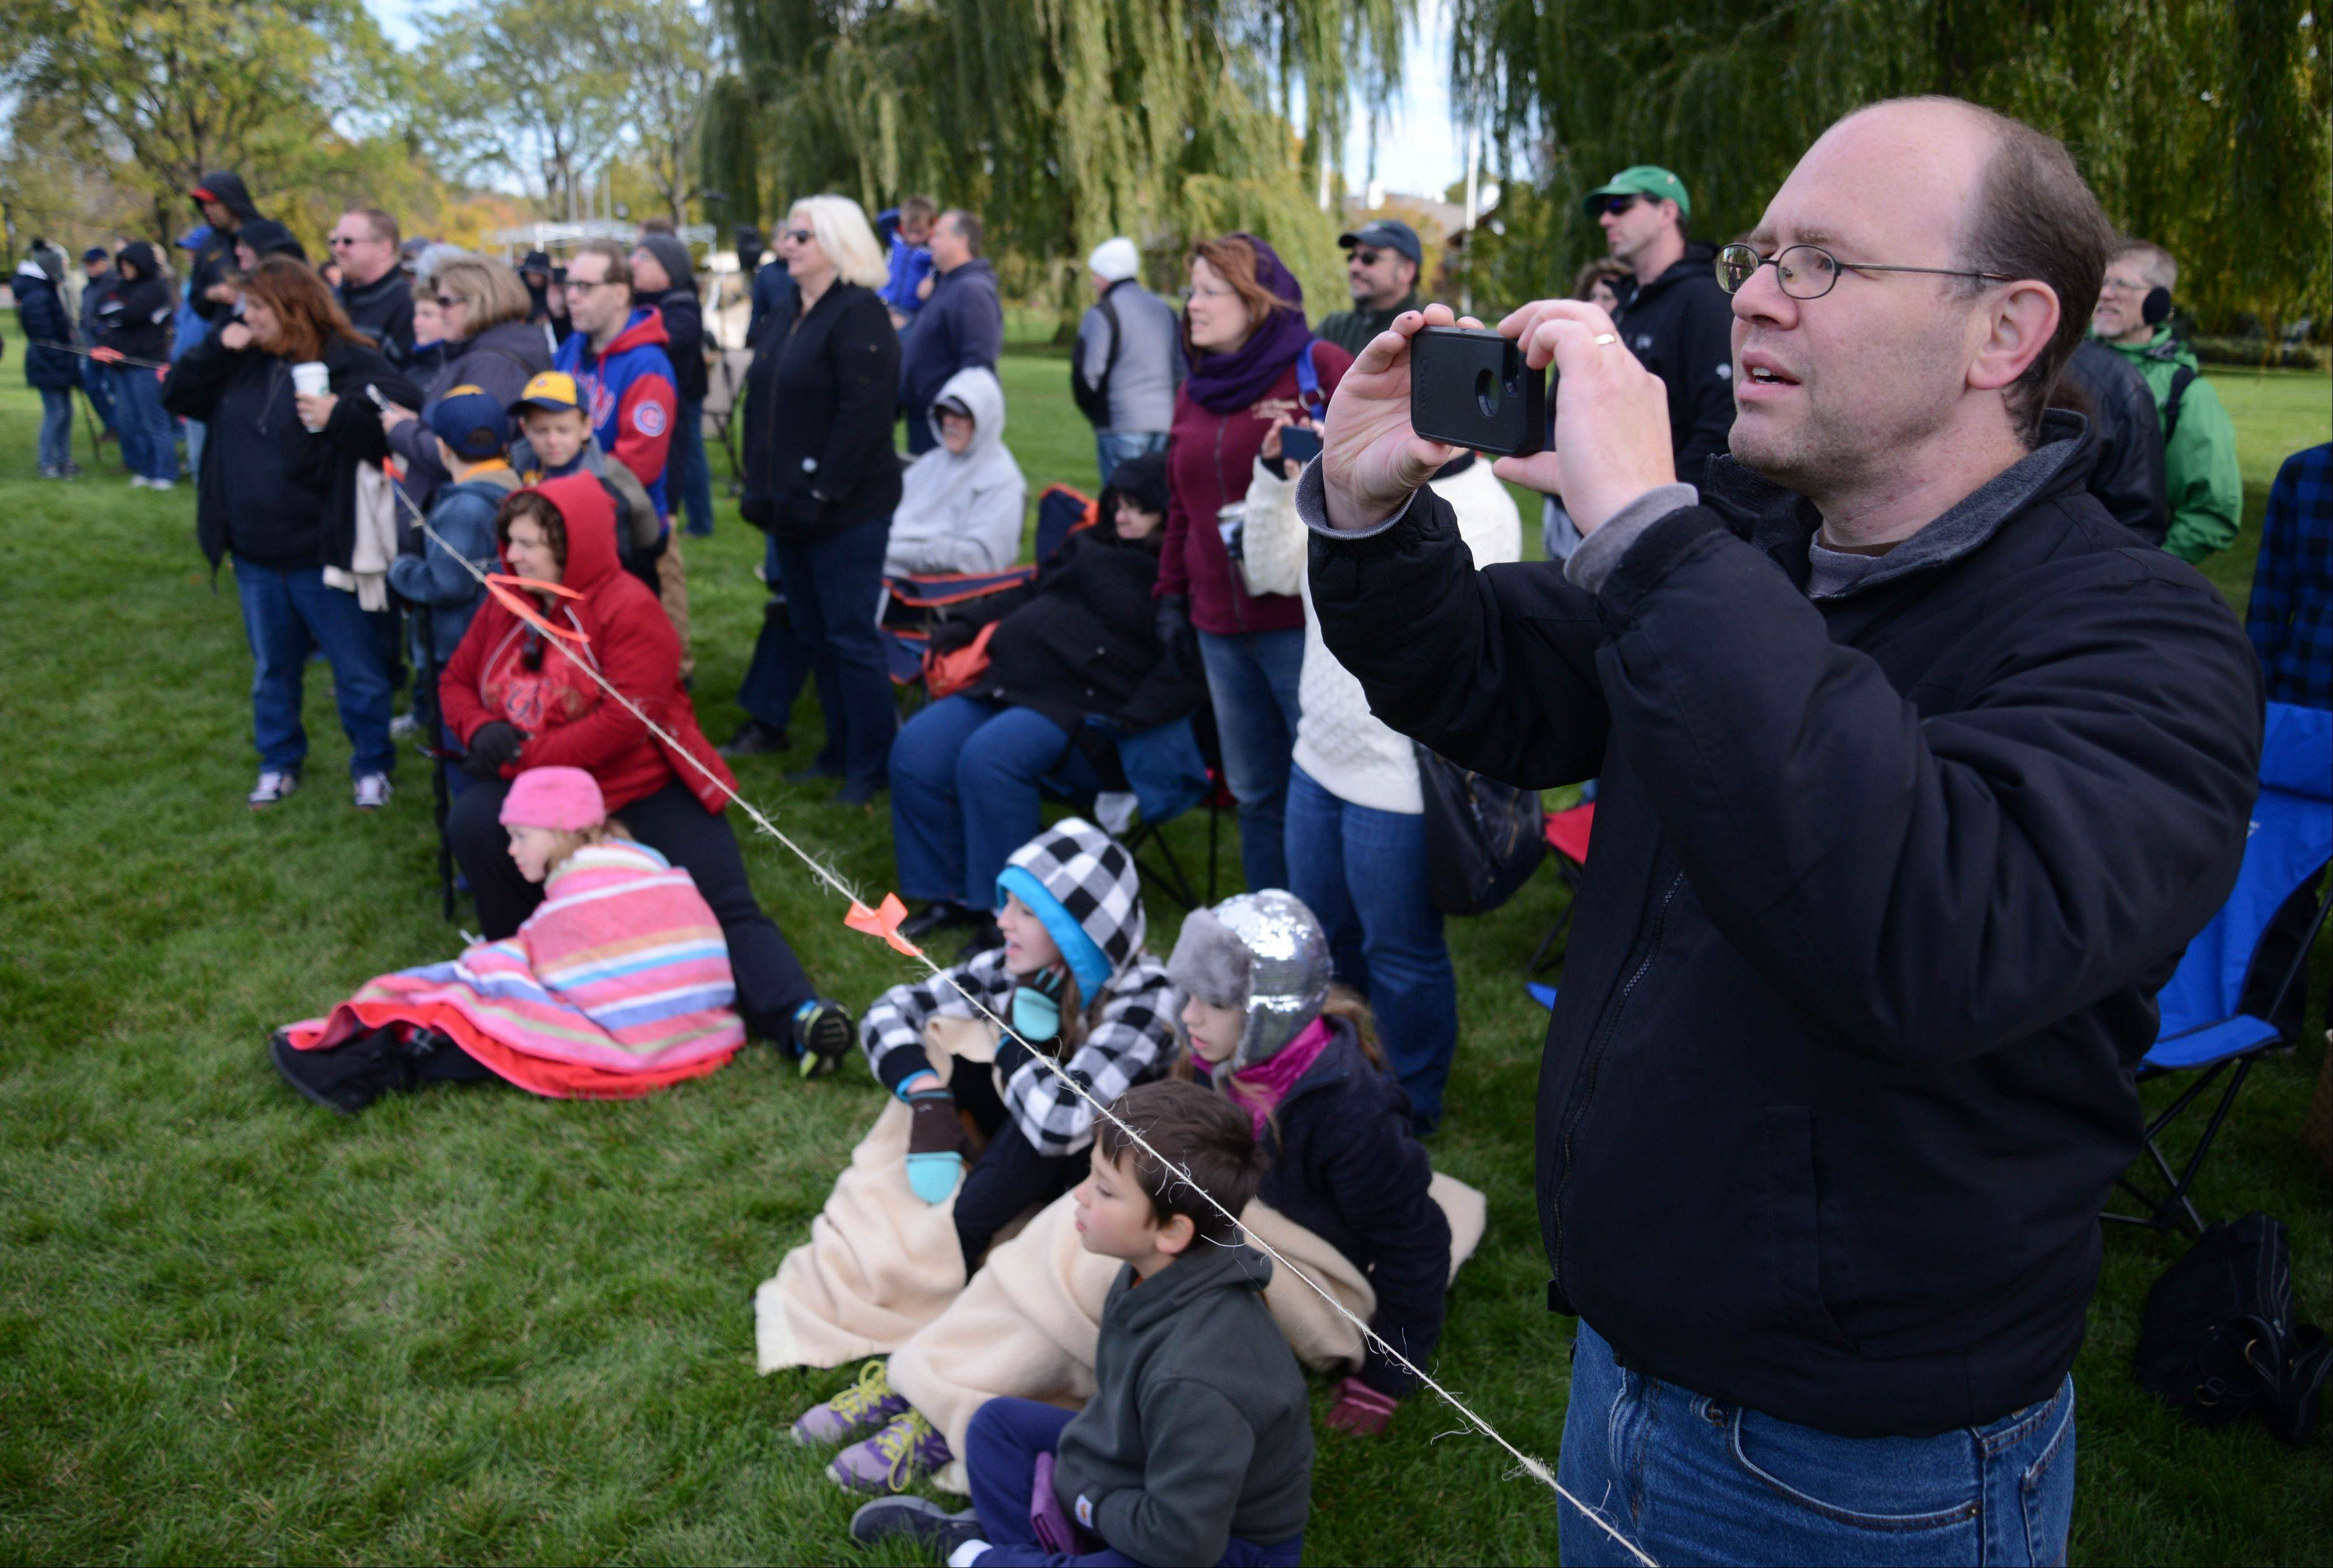 Ken Biggs of Hanover Park shoots some video of the catapult contest held Saturday morning at Cantigny Park in Wheaton. Well over 100 spectators came to watch.